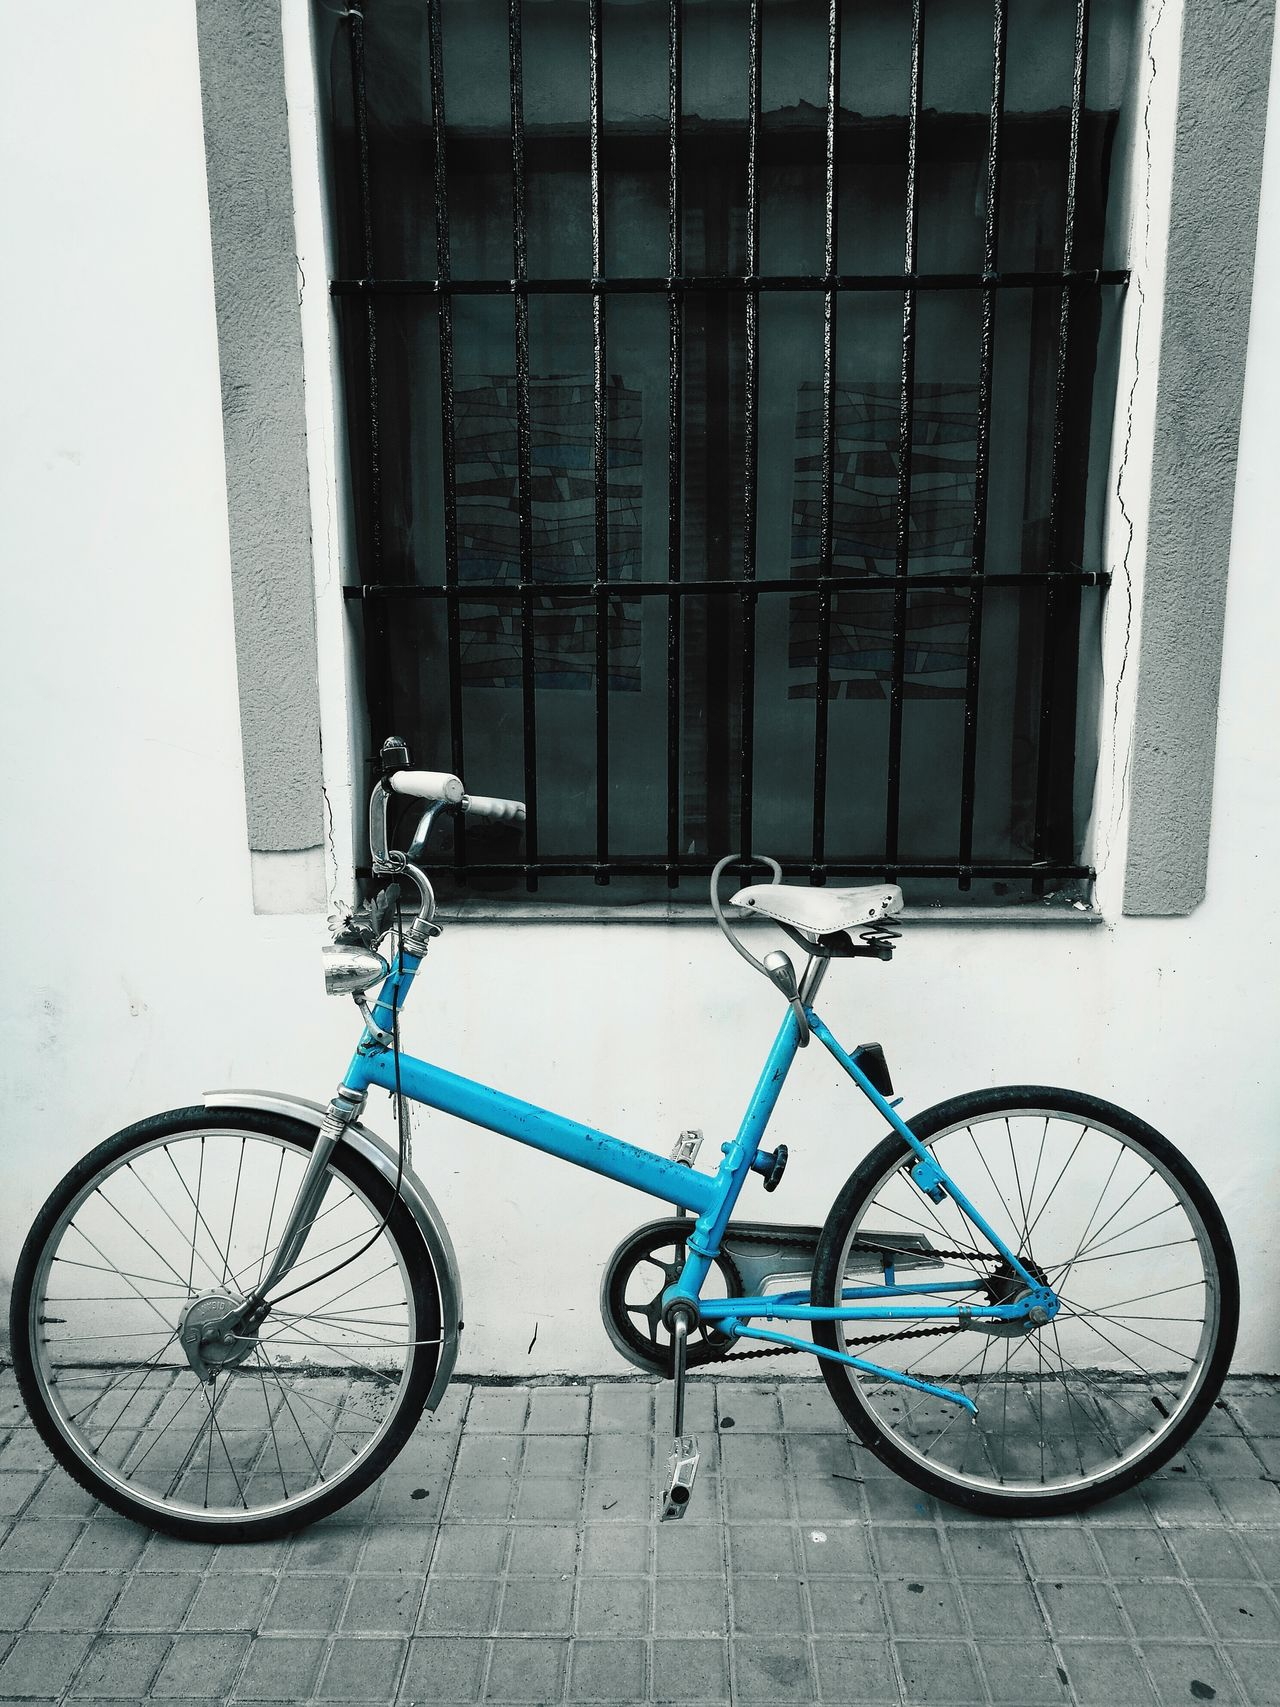 Bicycle Mode Of Transport Transportation Stationary Cycling Land Vehicle Parking No People Racing Bicycle Snow Outdoors Cold Temperature Pedal Day Spoke Tire Denia SPAIN